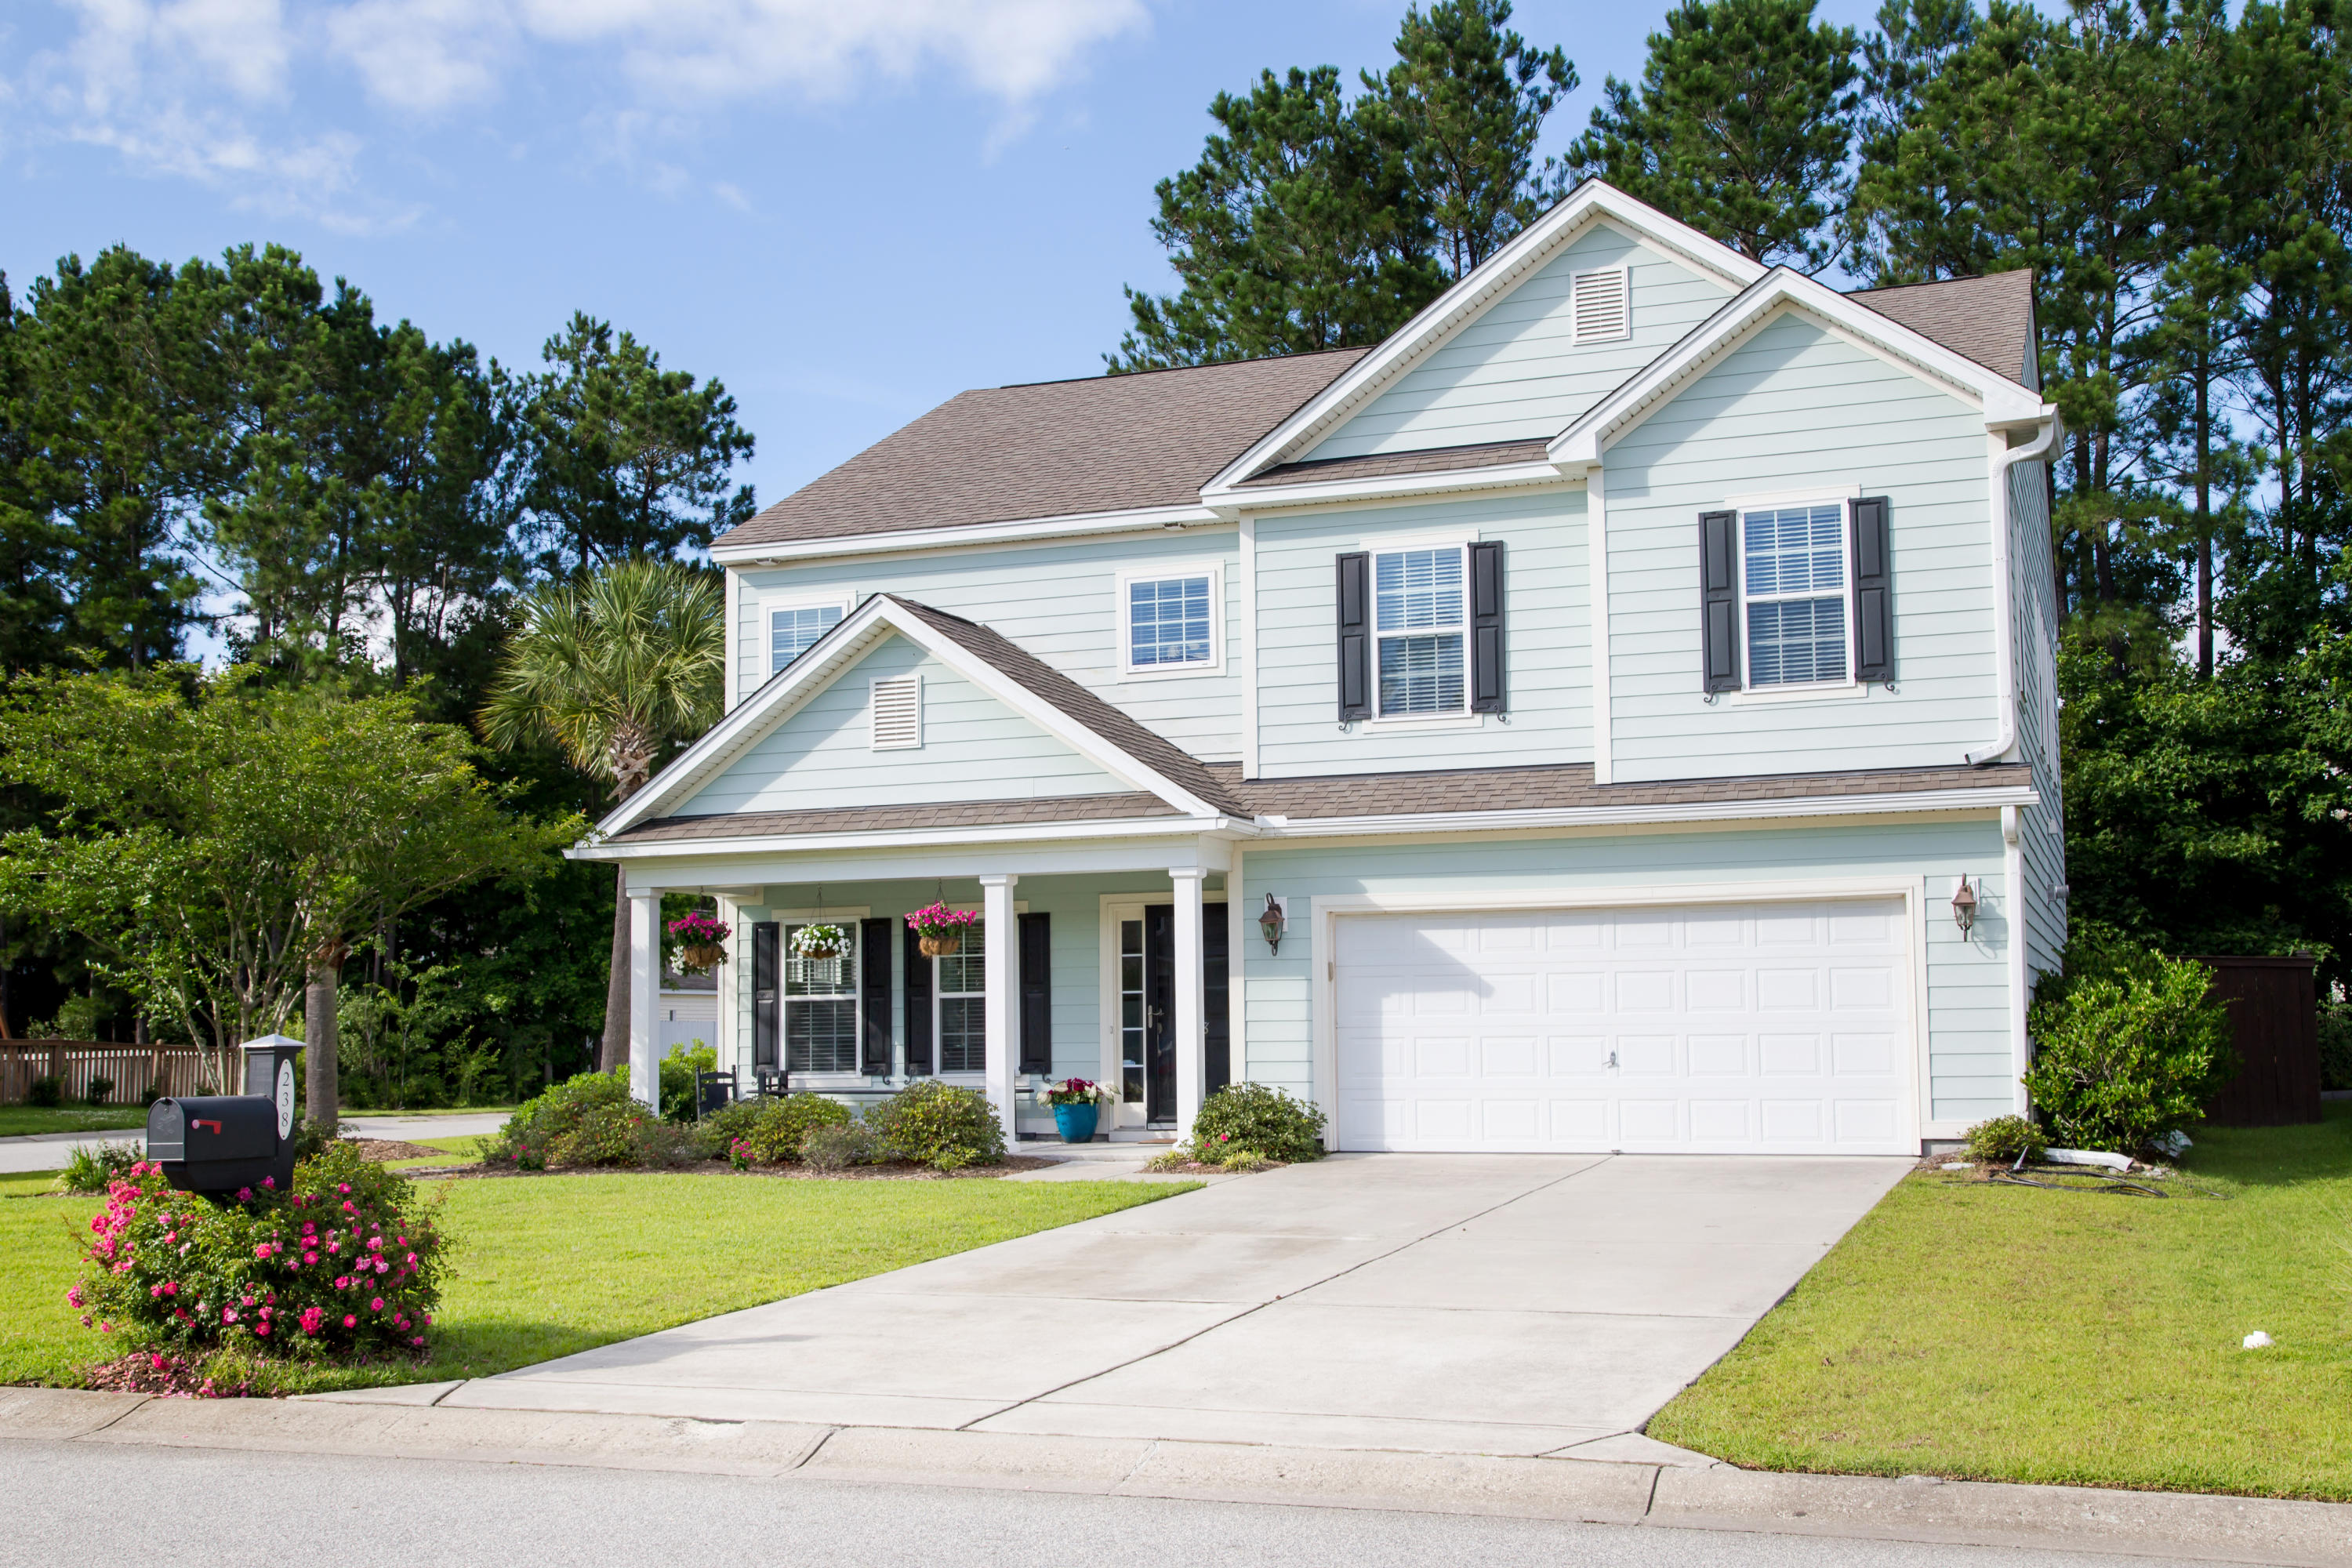 238 Nelliefield Creek Wando, SC 29492